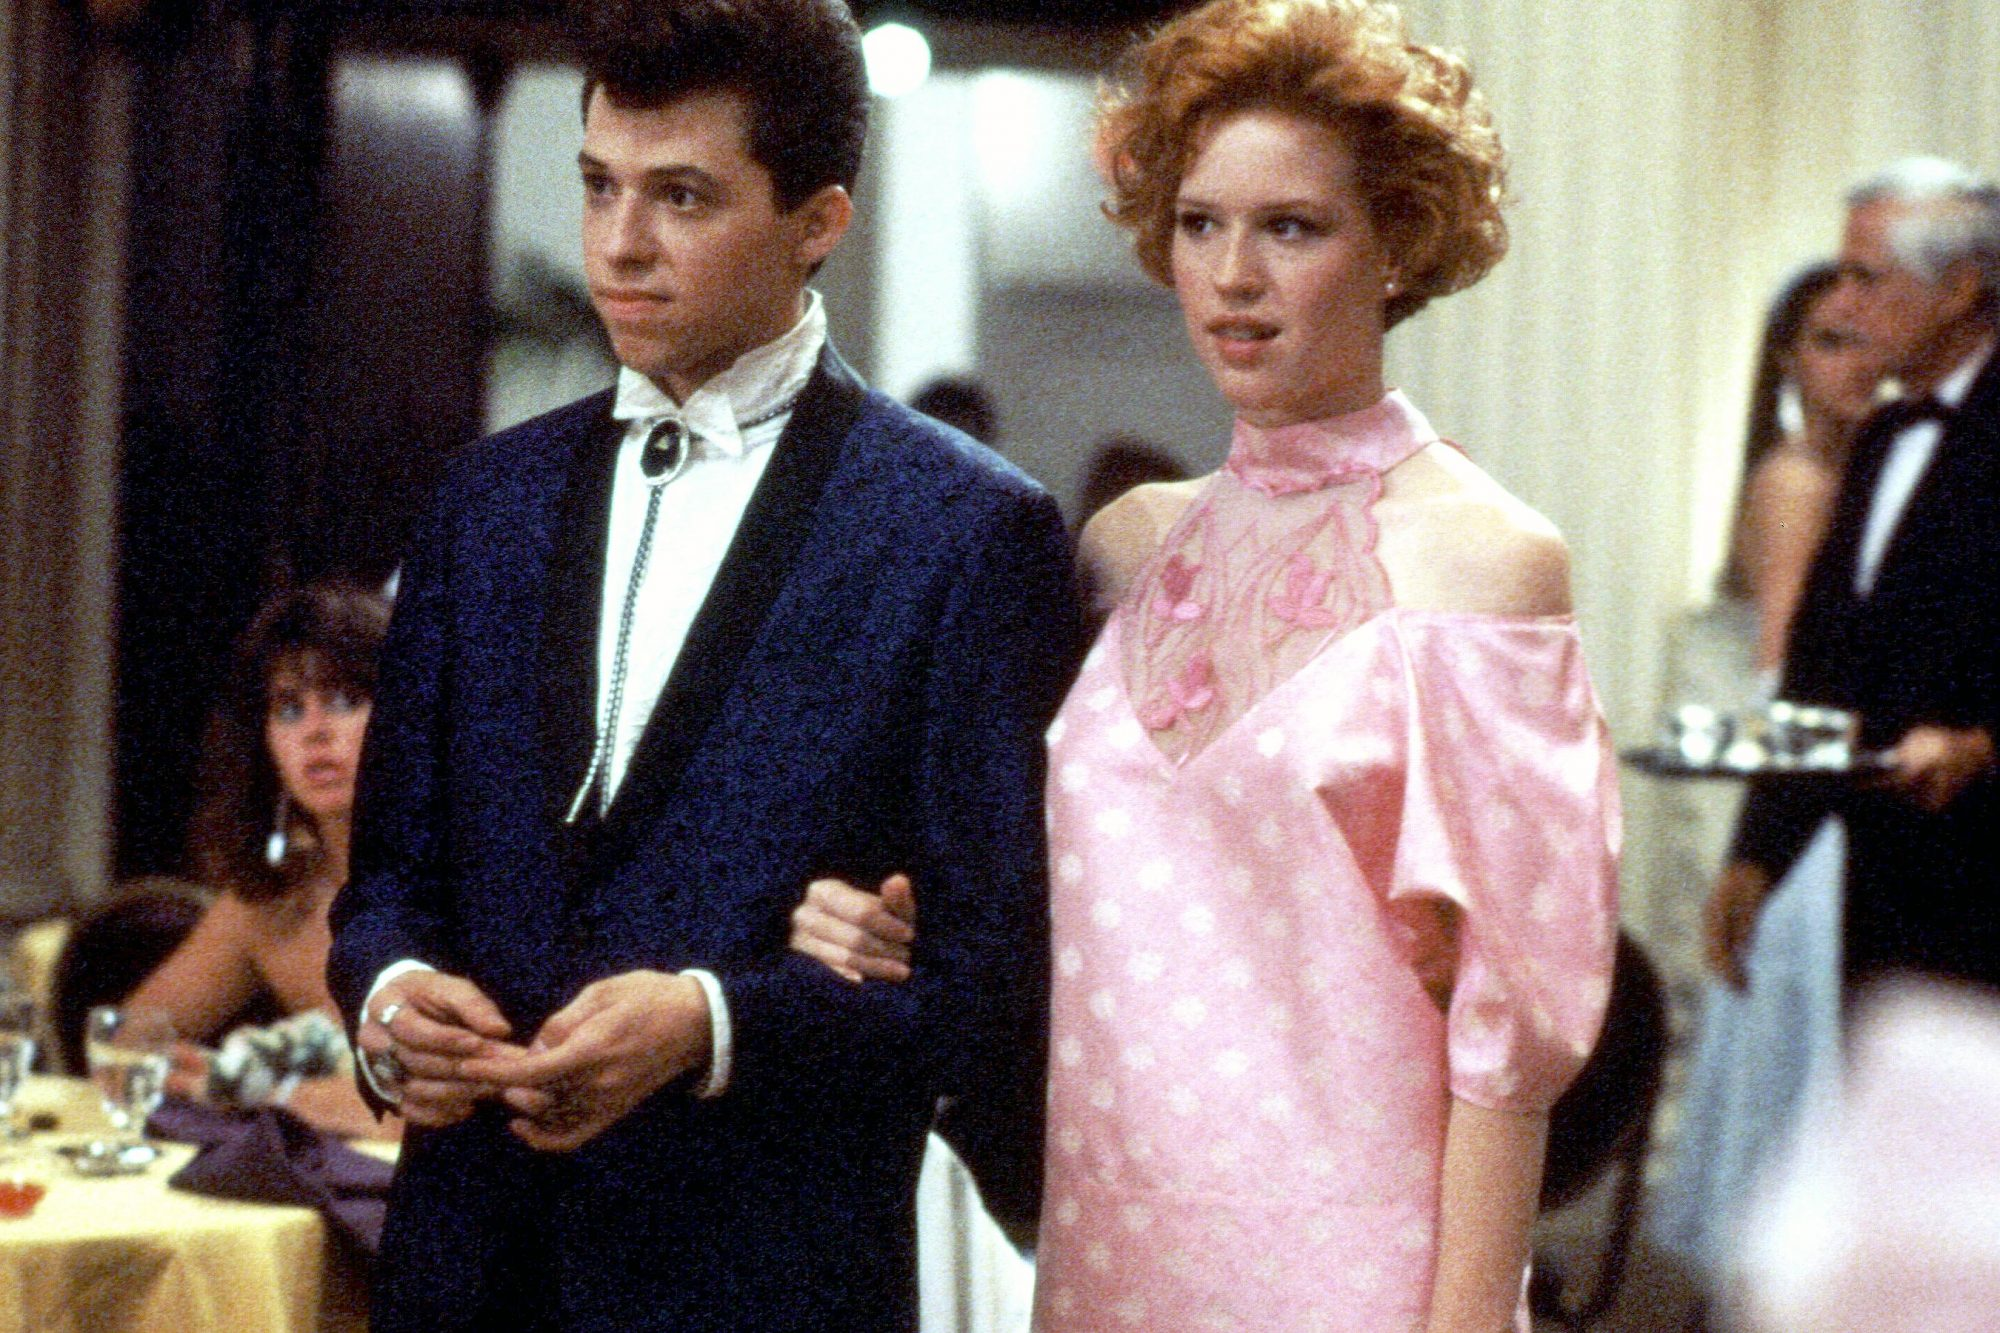 'Pretty in Pink' director on movie's famous lost ending and Molly Ringwald's theory that Duckie was secretly gay